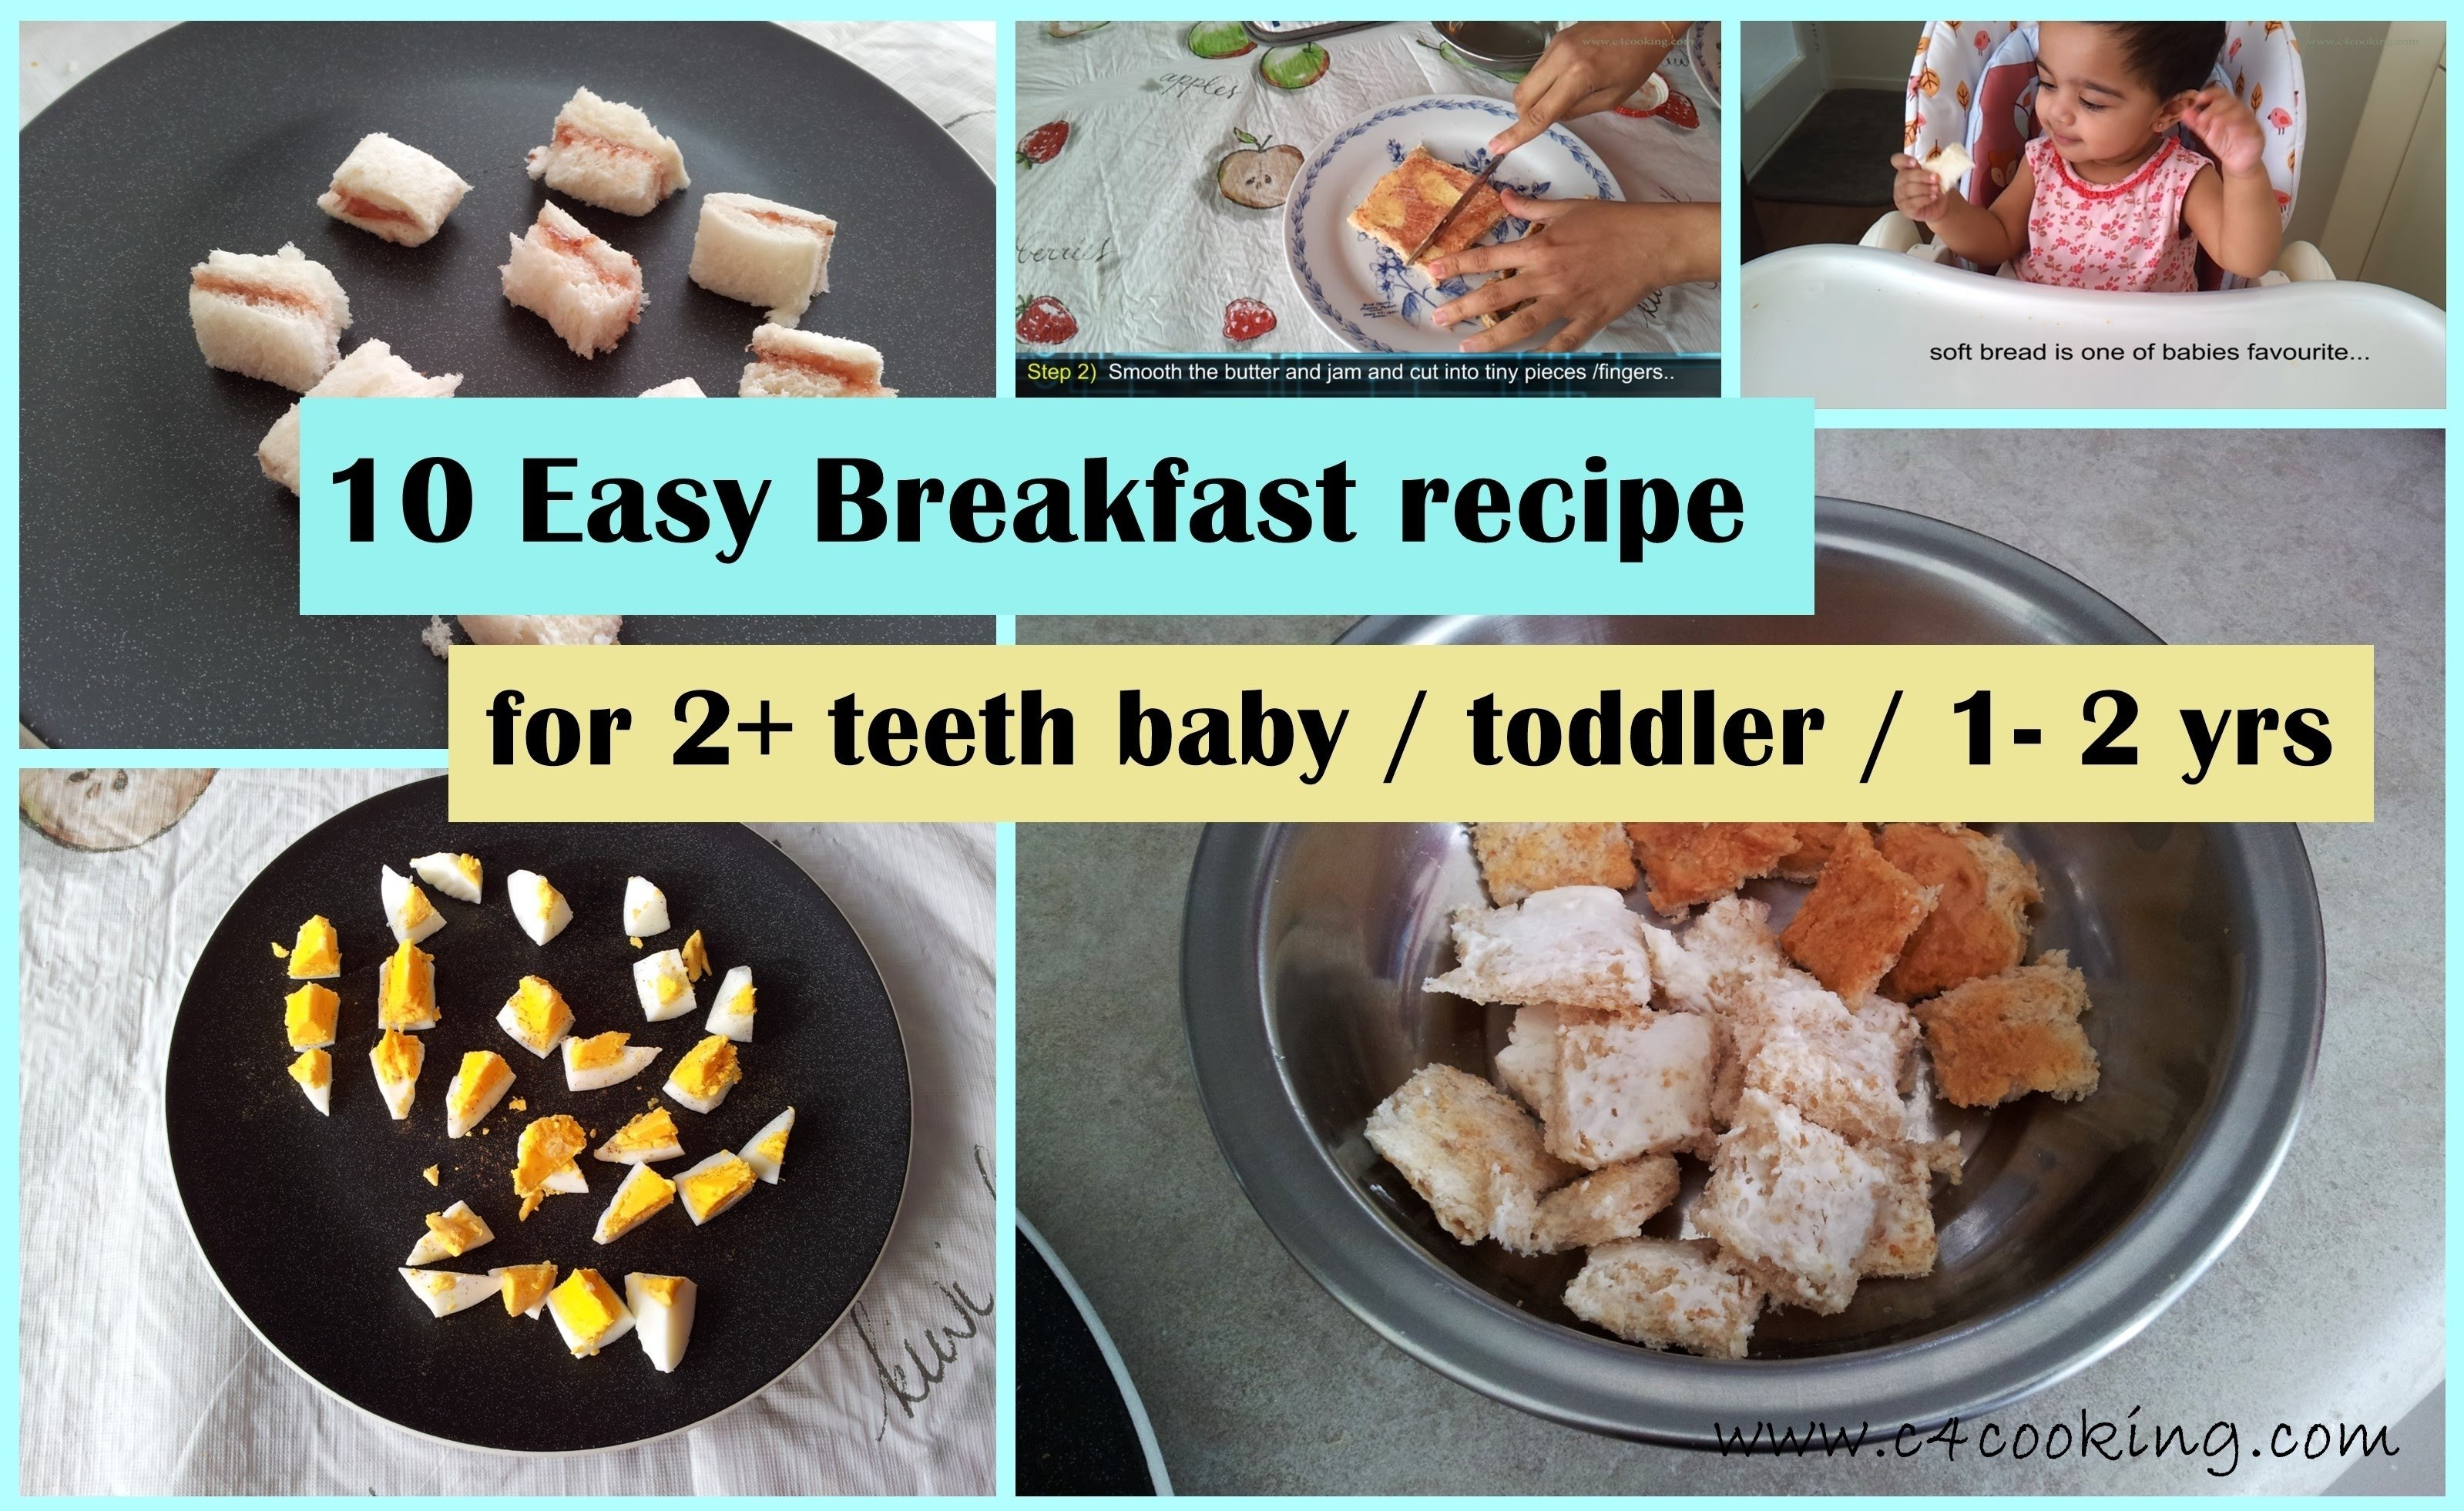 10 Perfect 10 Month Old Food Ideas 10 easy breakfast ideas for 2 teeth baby toddler 1 2 yrs 4